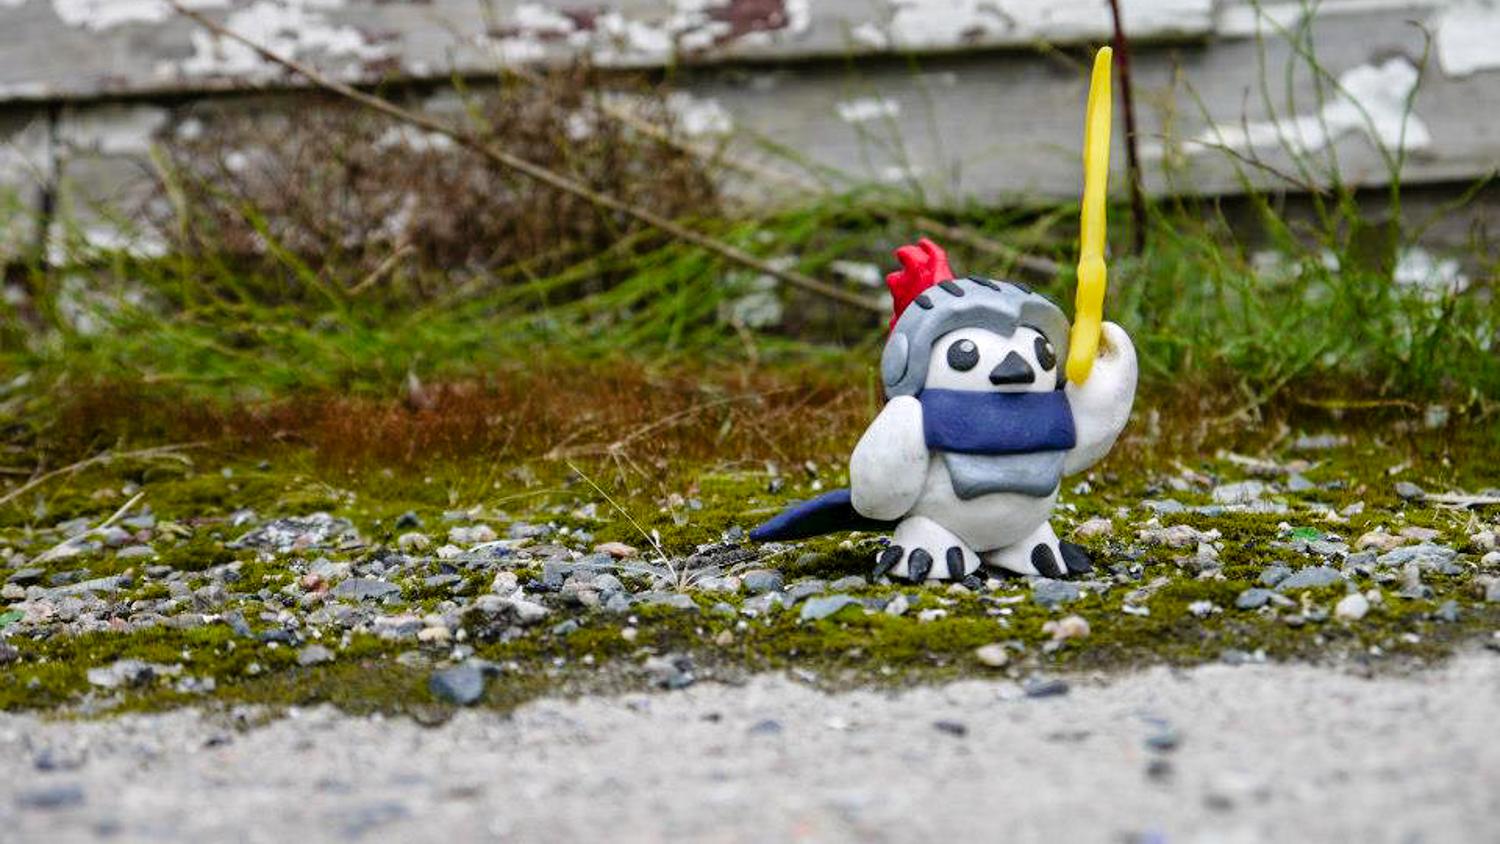 A Ptarmicon mascot lies on the ground in a photo uploaded to the event's Facebook page